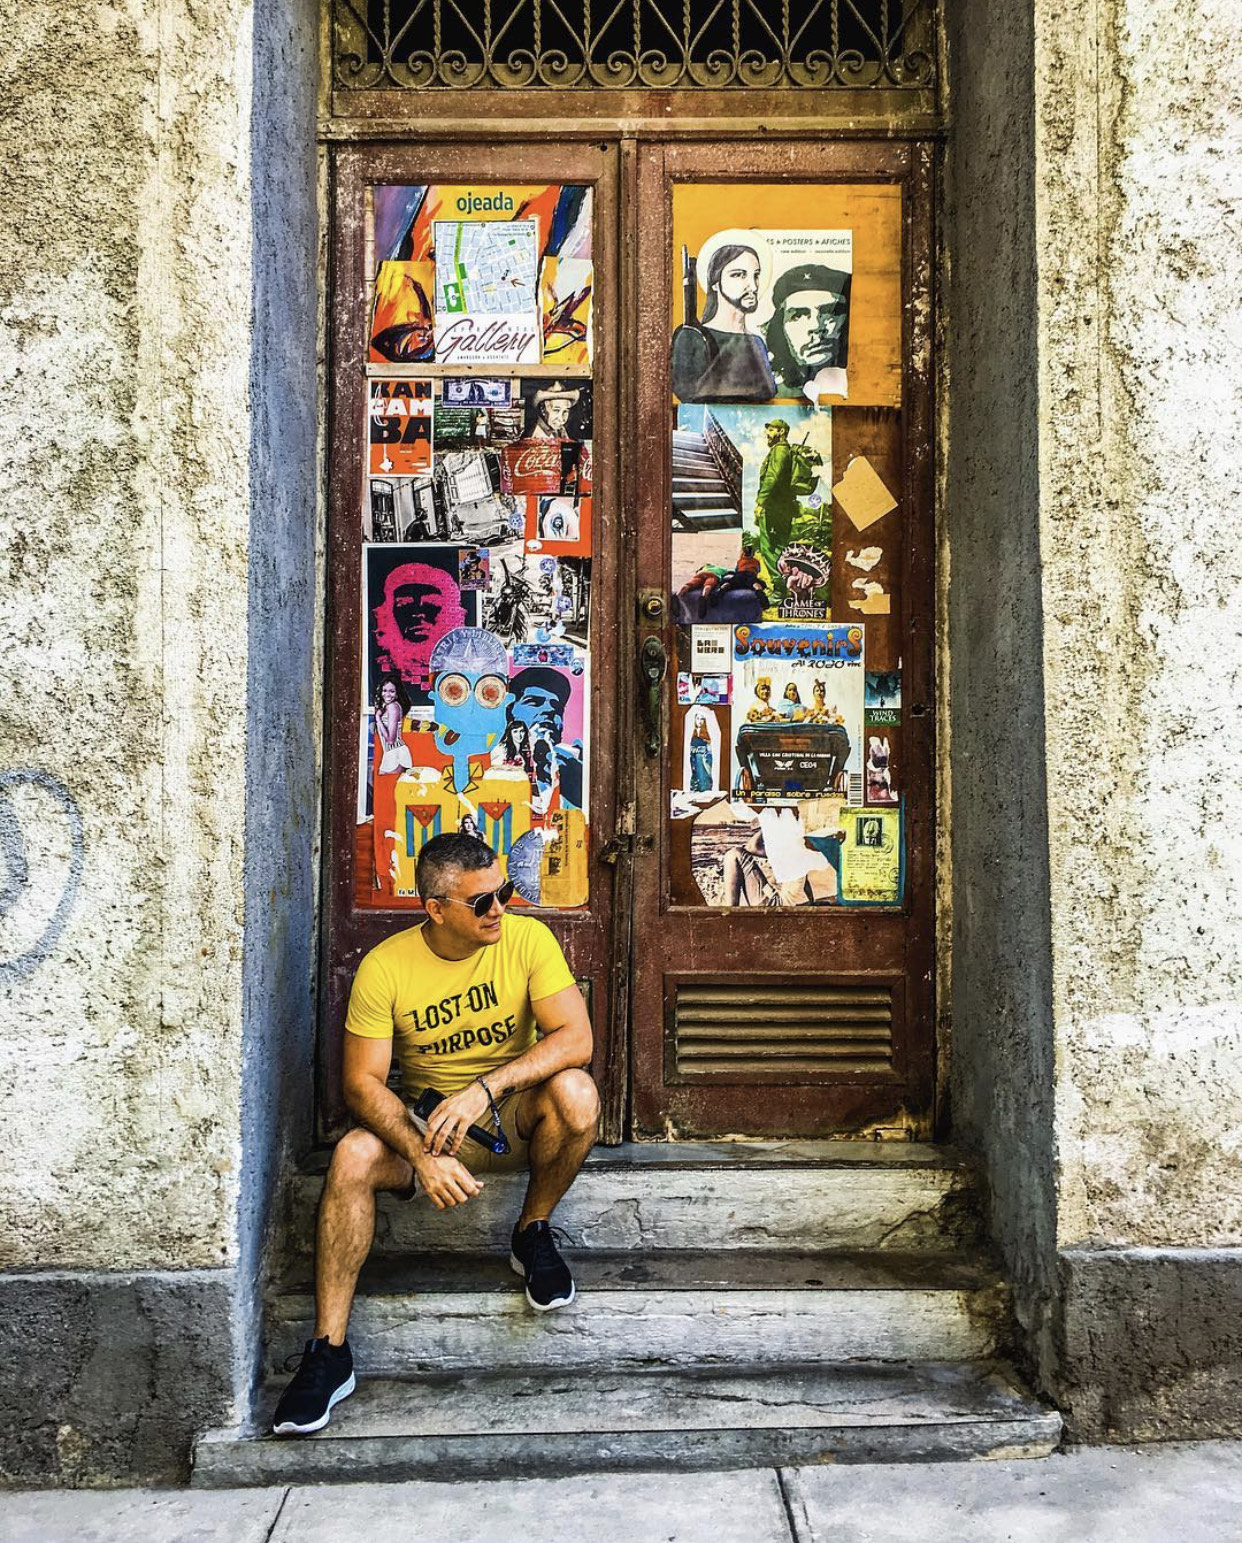 Aruban travel content creator Hyro Oduber sits in front of old doors covered in posters